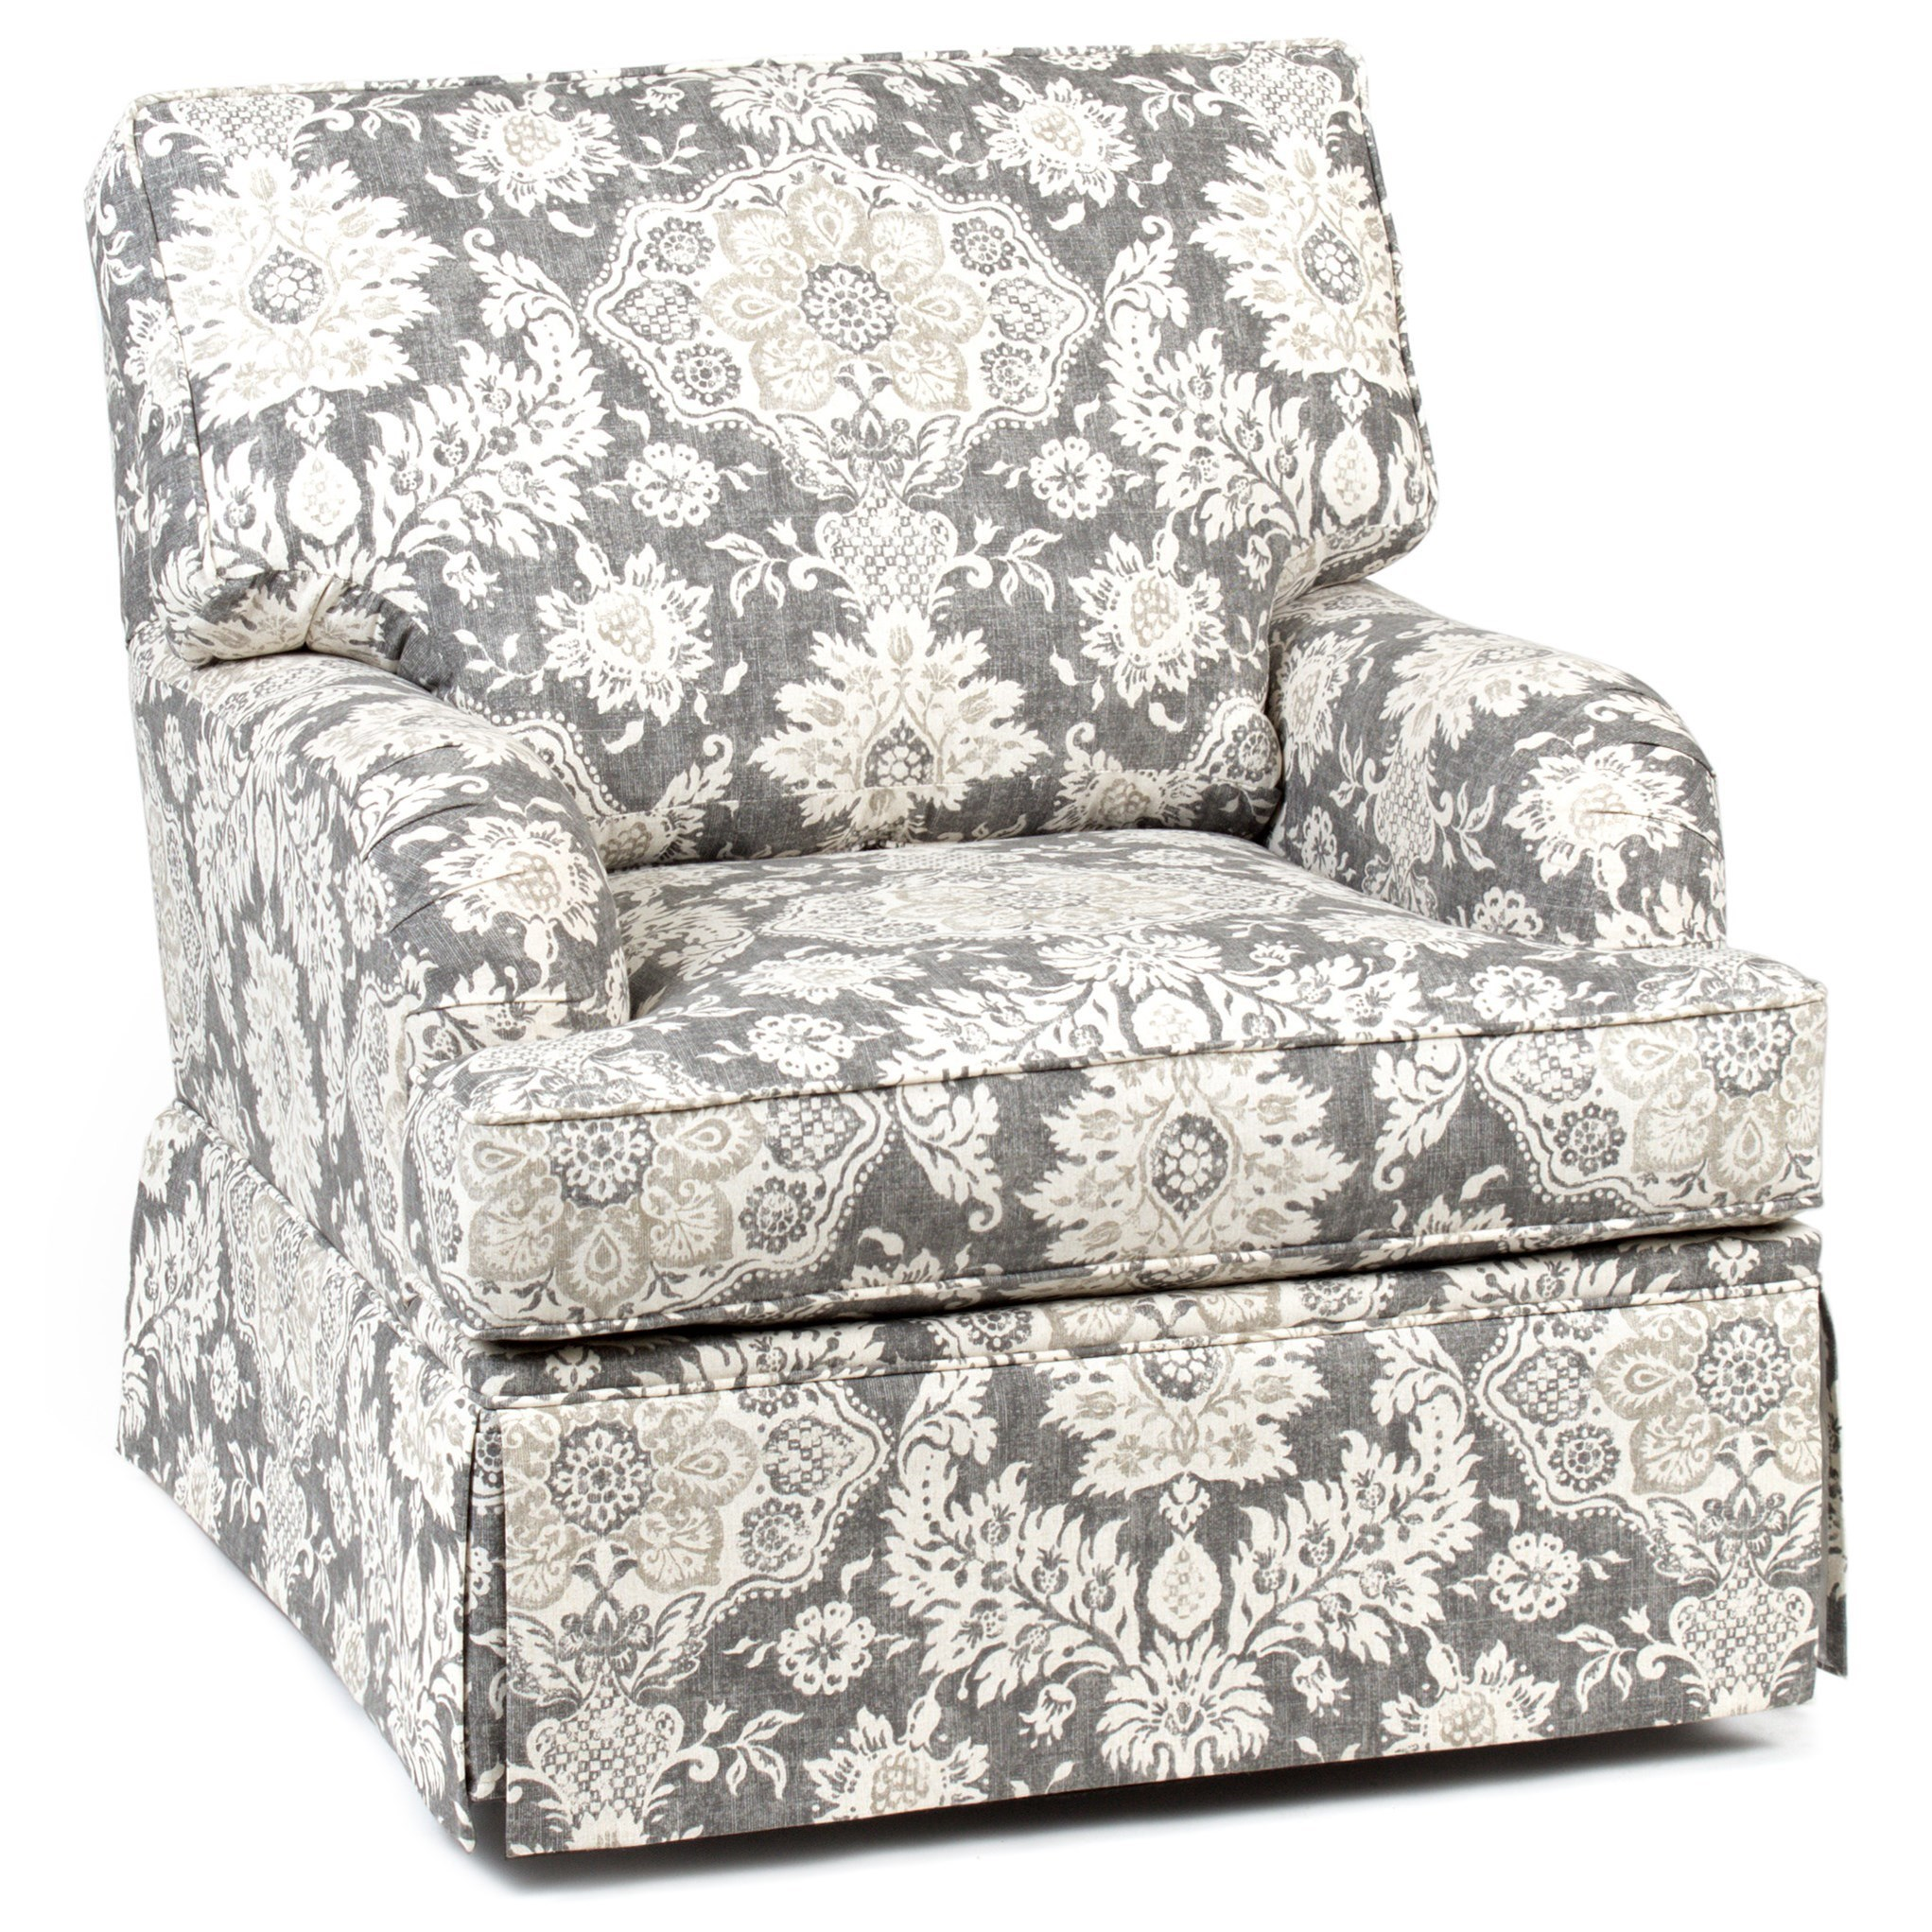 Chairs America Accent Chairs And Ottomans Traditional Skirted Swivel Glider Chair Zak S Home Upholstered Chairs